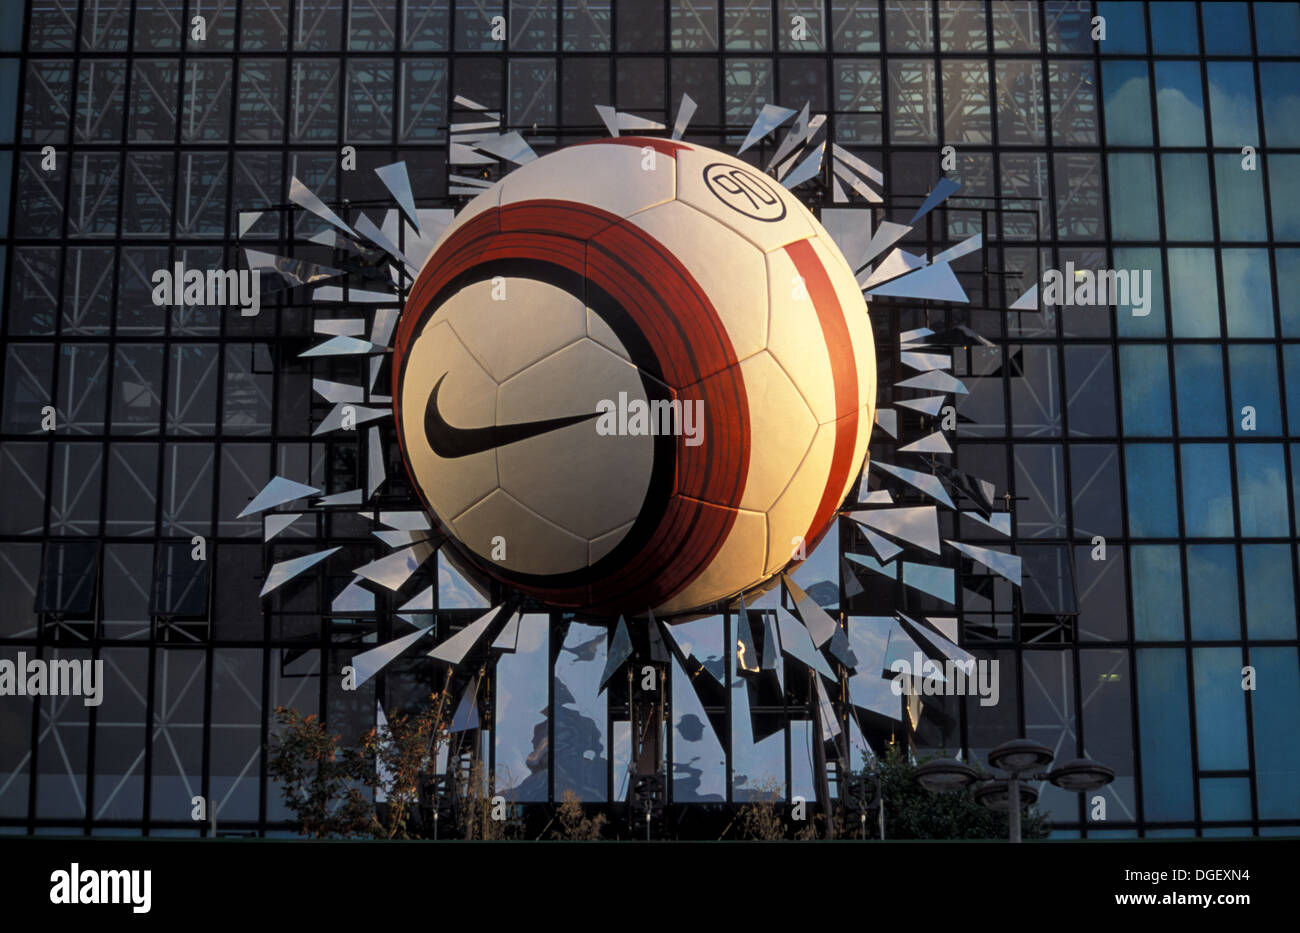 Nike Advertisement of a giant football ball simulating breaking the glasses of a building in La Defense, Paris Stock Photo